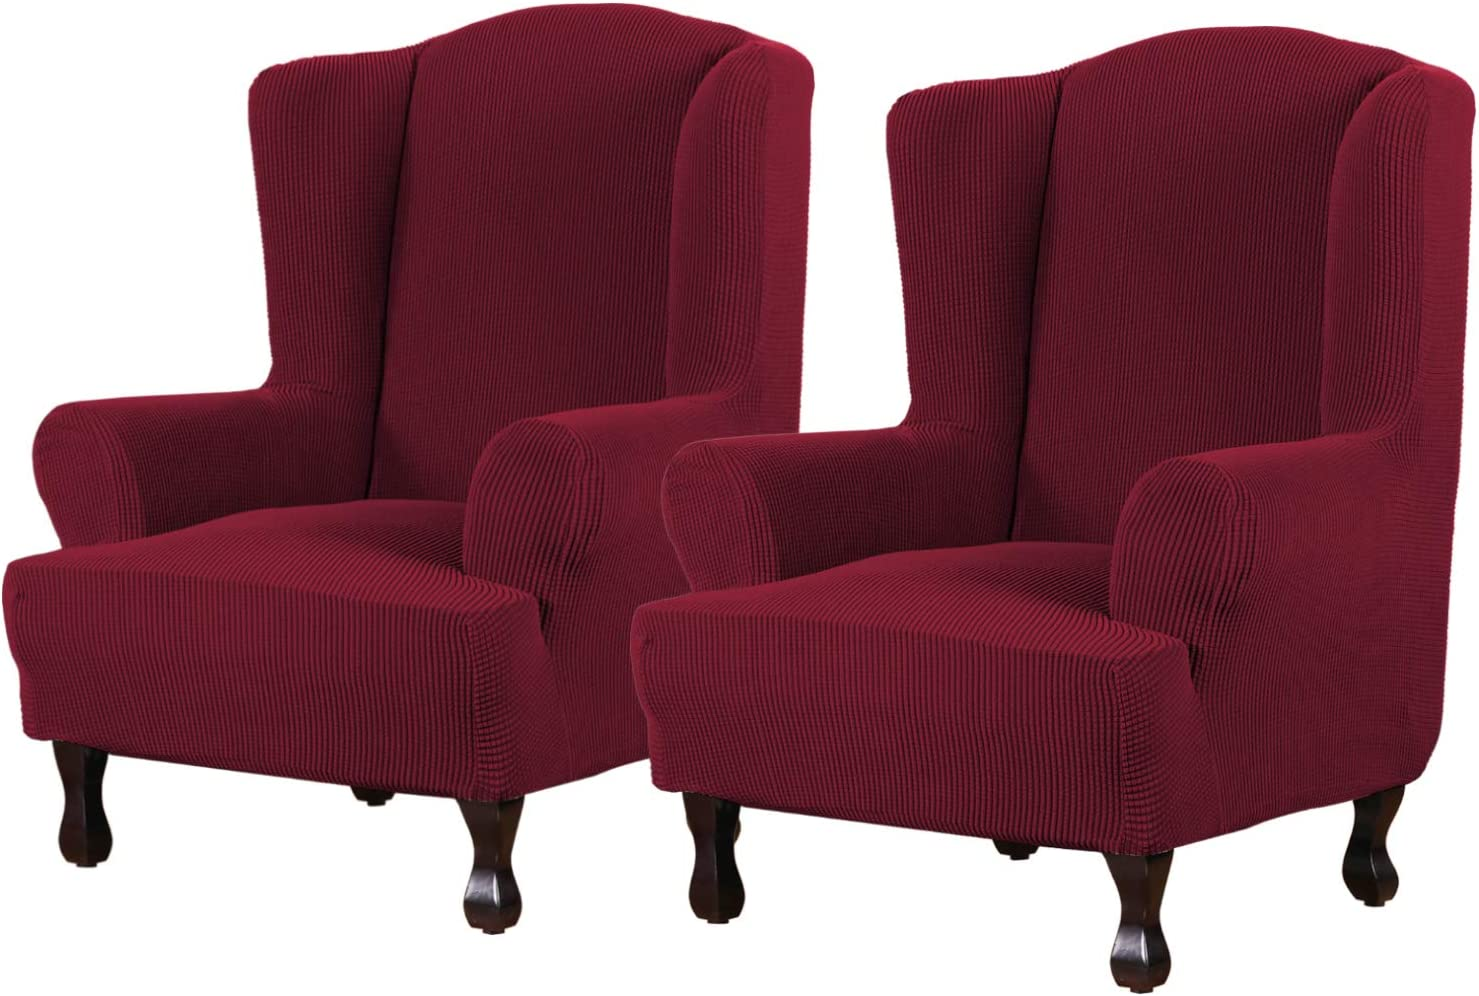 Super Stretch Stylish Furniture Cover/Wingback Chair Cover Slipcover Spandex Jacquard Checked Pattern, Super Soft Slipcover Machine Washable/Skid Resistance (2 Pack Wing Chair, Burgundy Red)